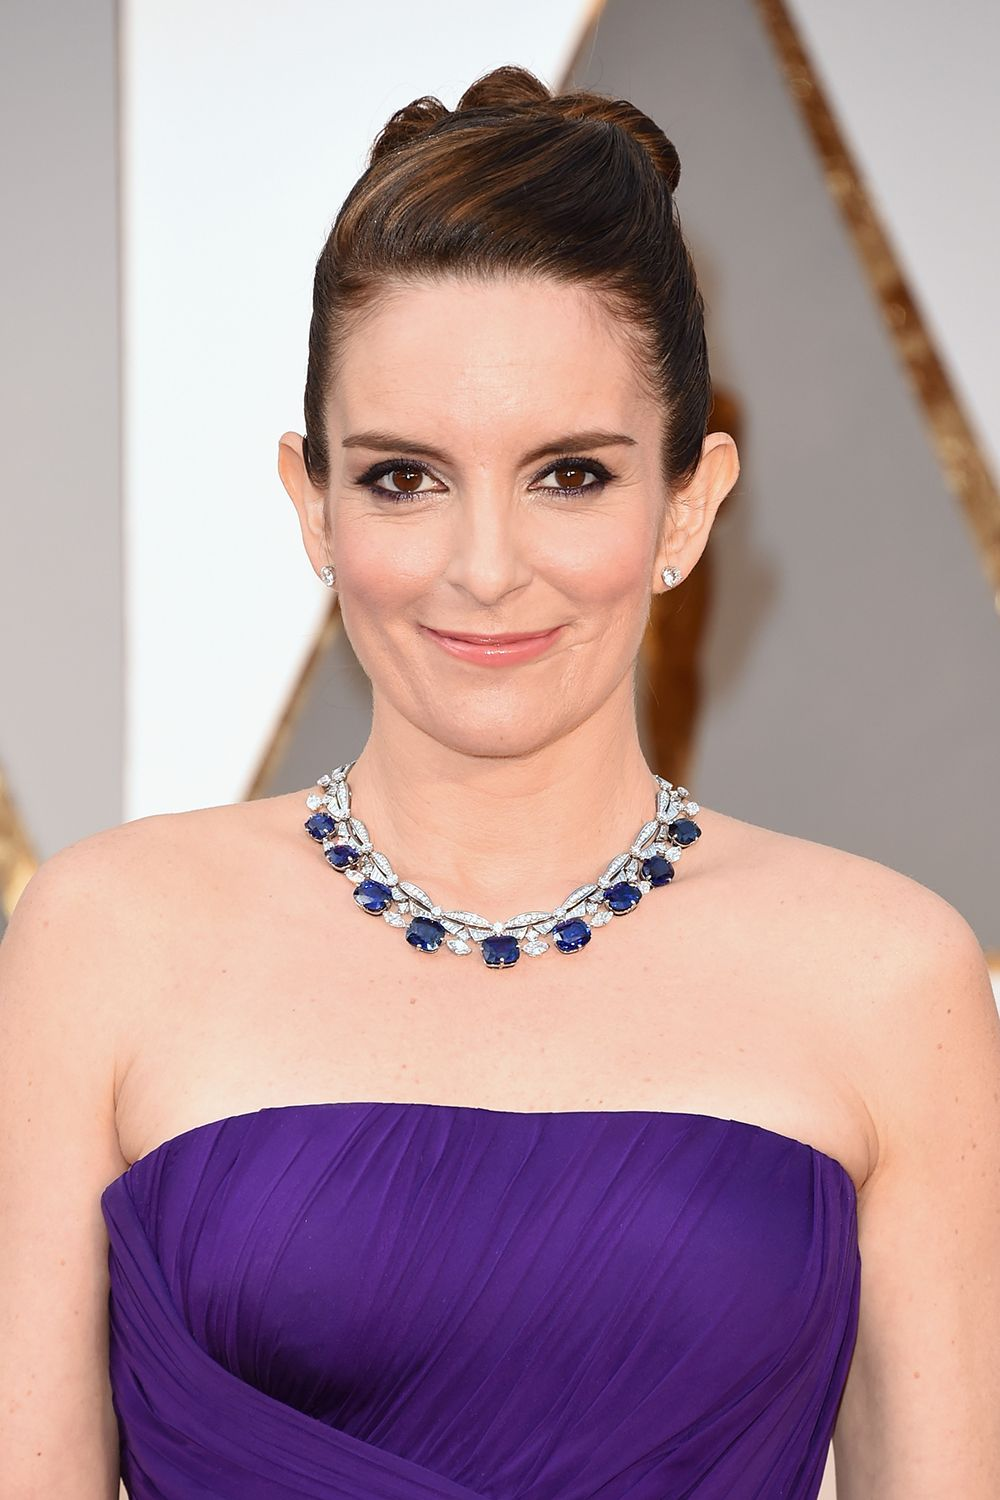 """Tina Fey """"We've been so conditioned now to never see a real human face, one that moves, with its original teeth,"""" Fey told Town & Country . """"Sometimes we forget that there is a choice. I choose not to do this. It's like wearing multiple pairs of Spanx: Good for you, not for me. Not mandatory."""""""